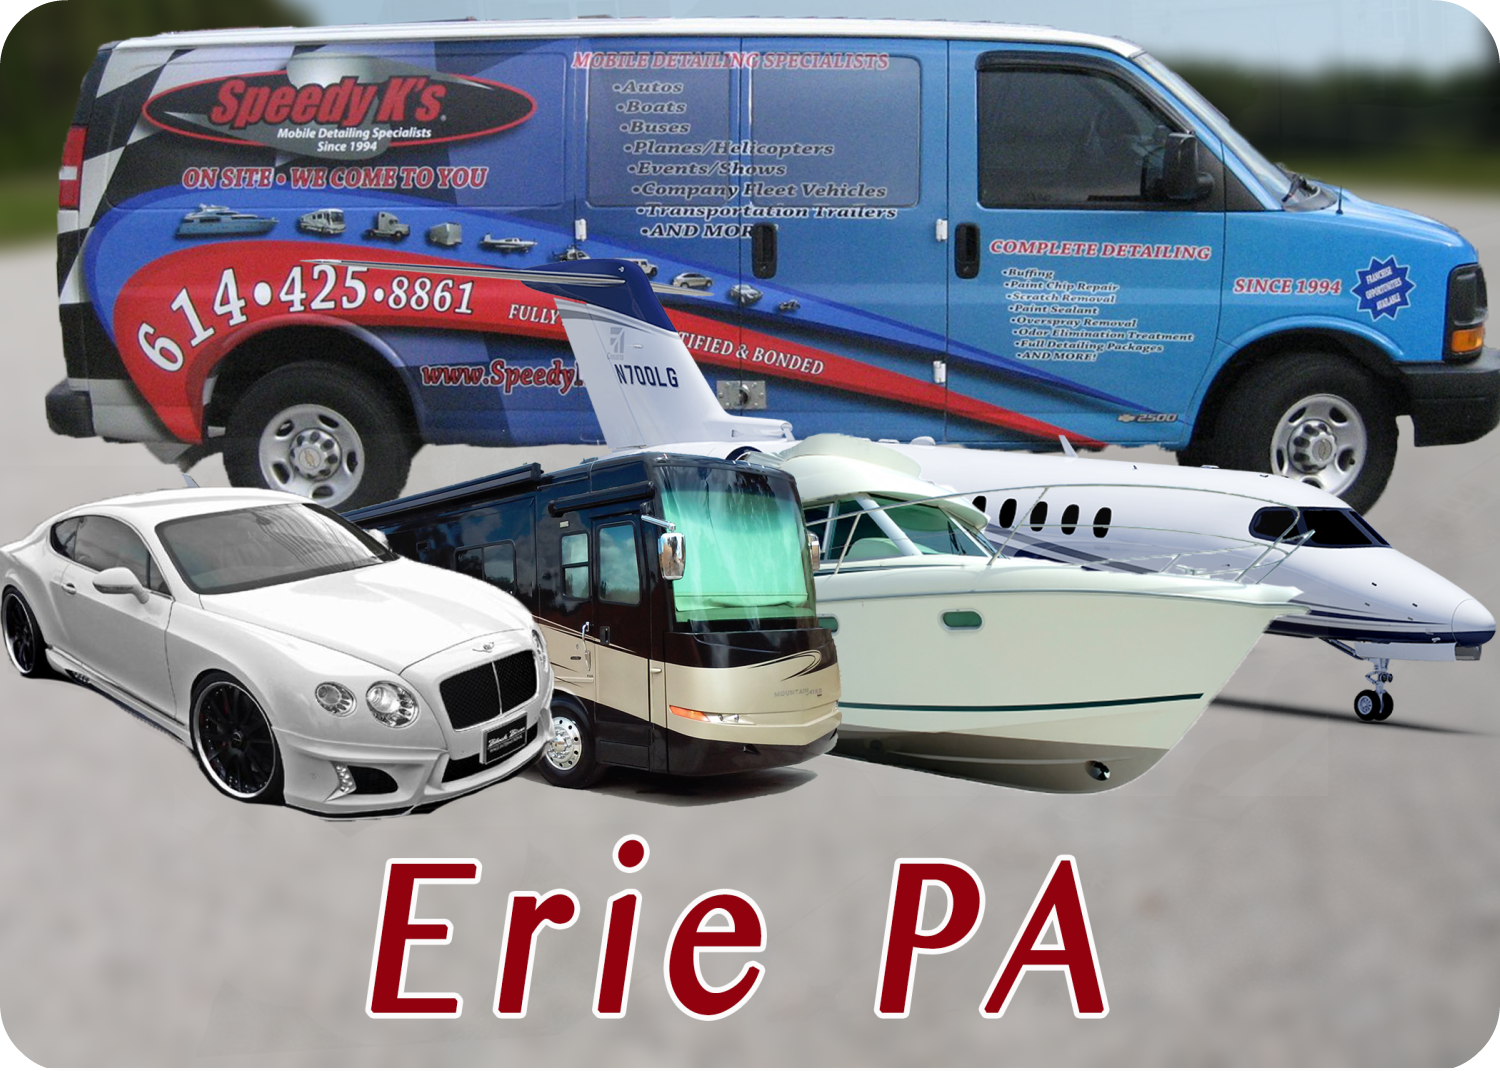 Erie PA Detailing and Car Cleaning